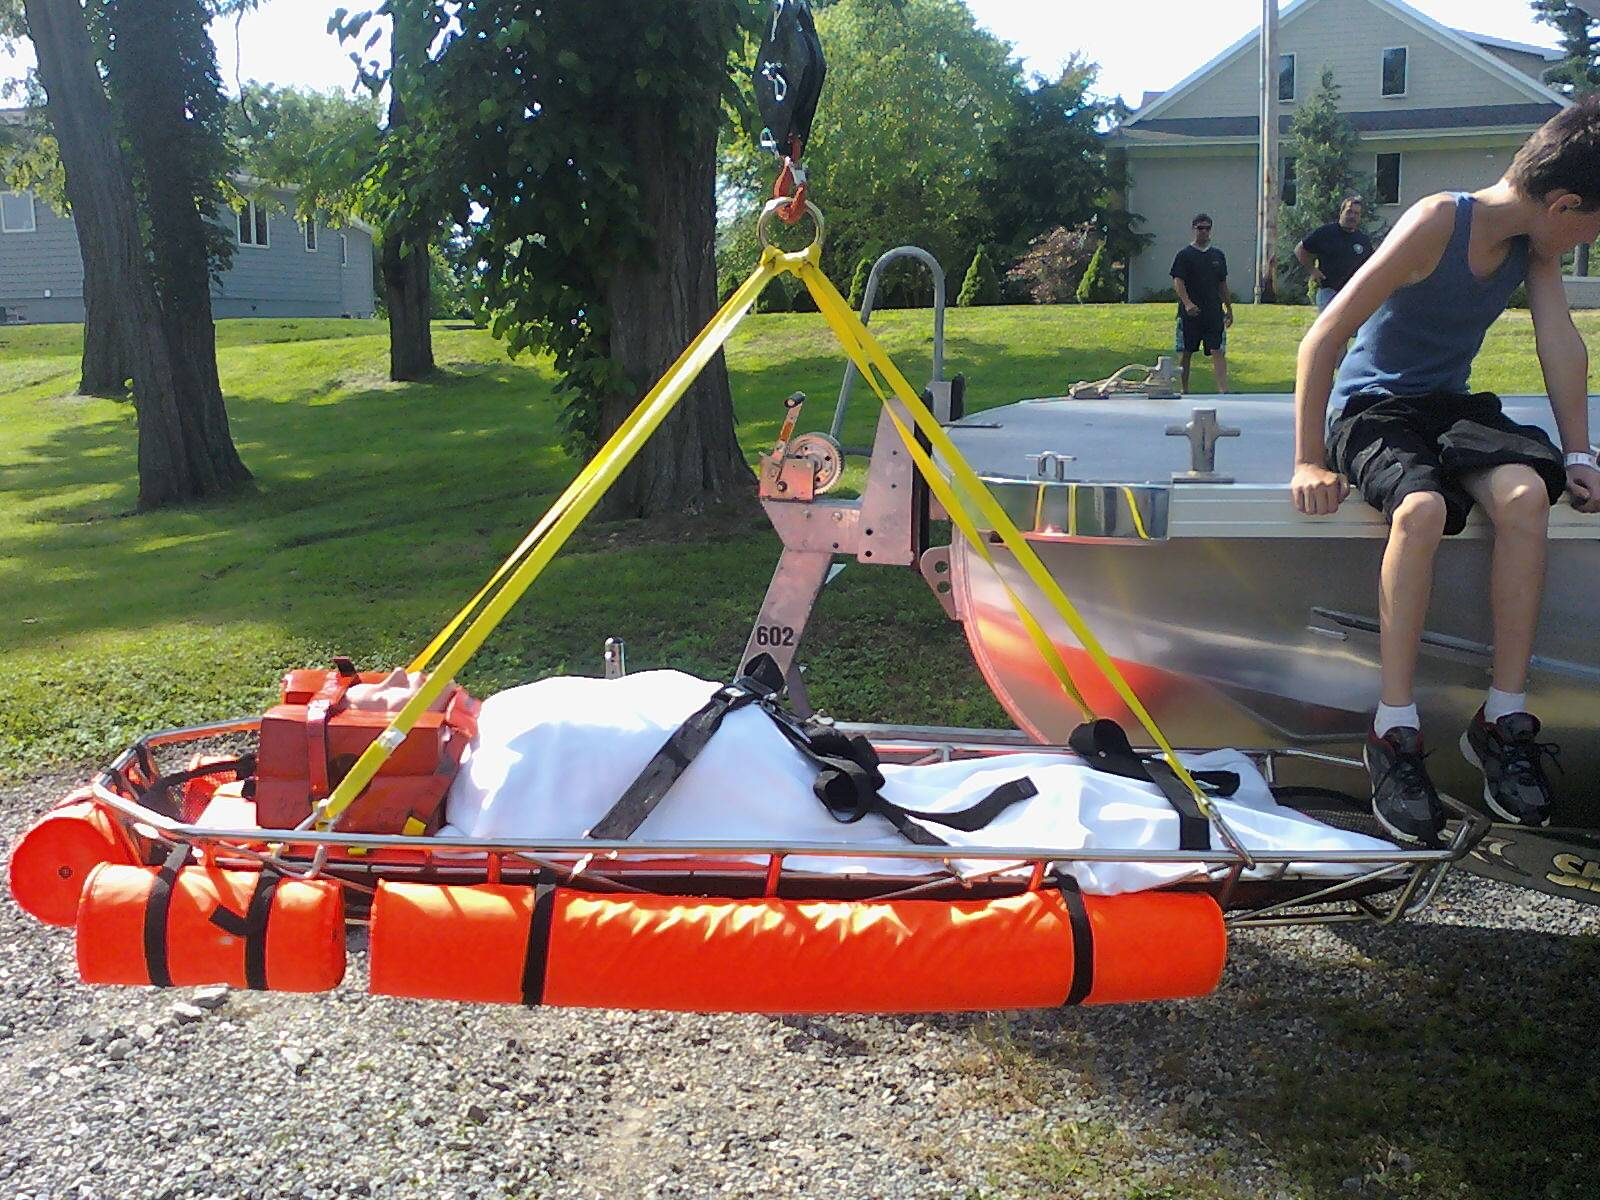 Boat 602's Rescue Crane with Stokes Basket Application...